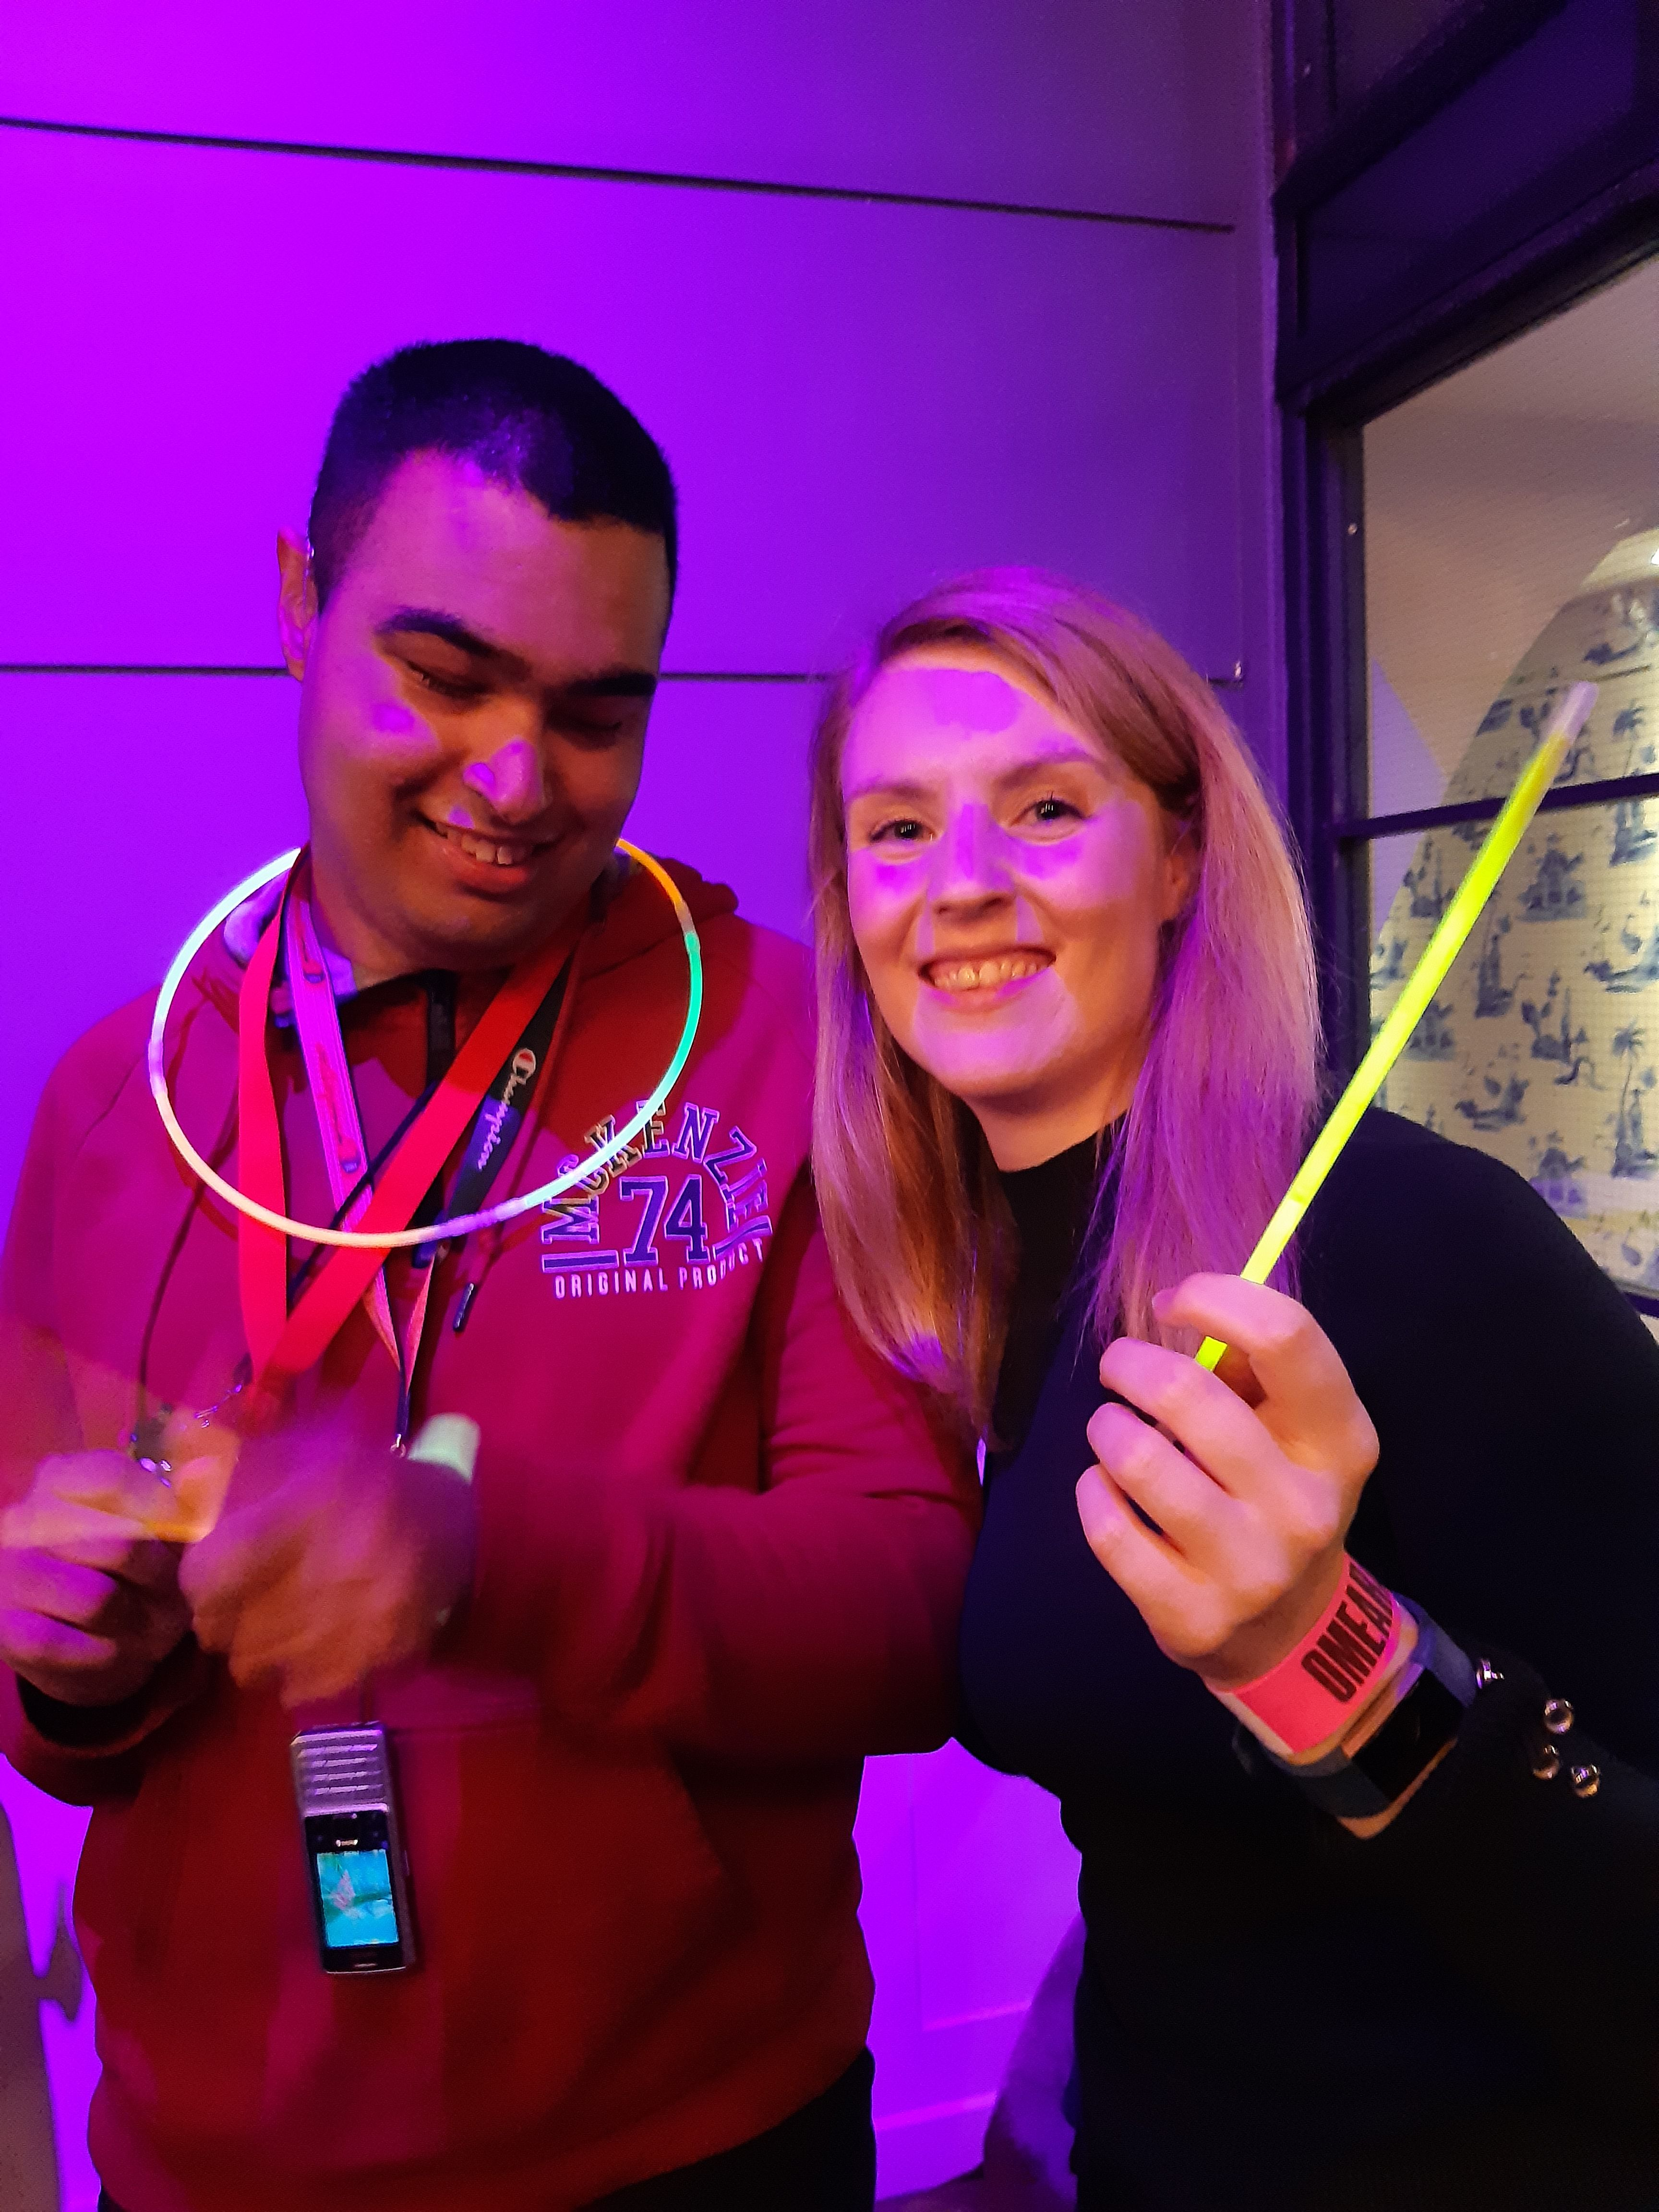 Man with glow stick around his neck and lady holding glow stick stood together in fluorescent light, both smiling